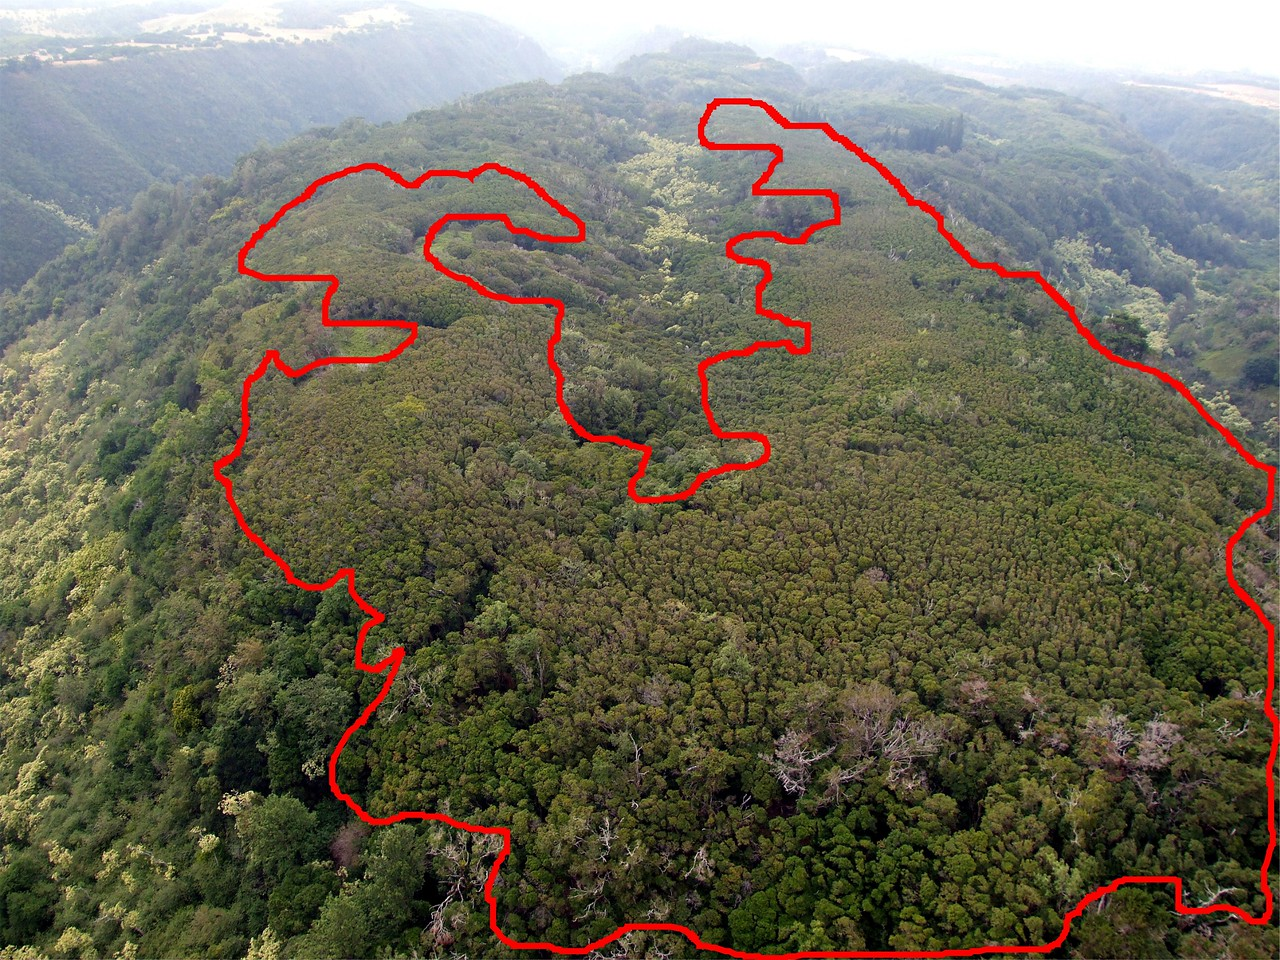 Strawberry guava spreading into the West Maui watershed; few native ohia remain